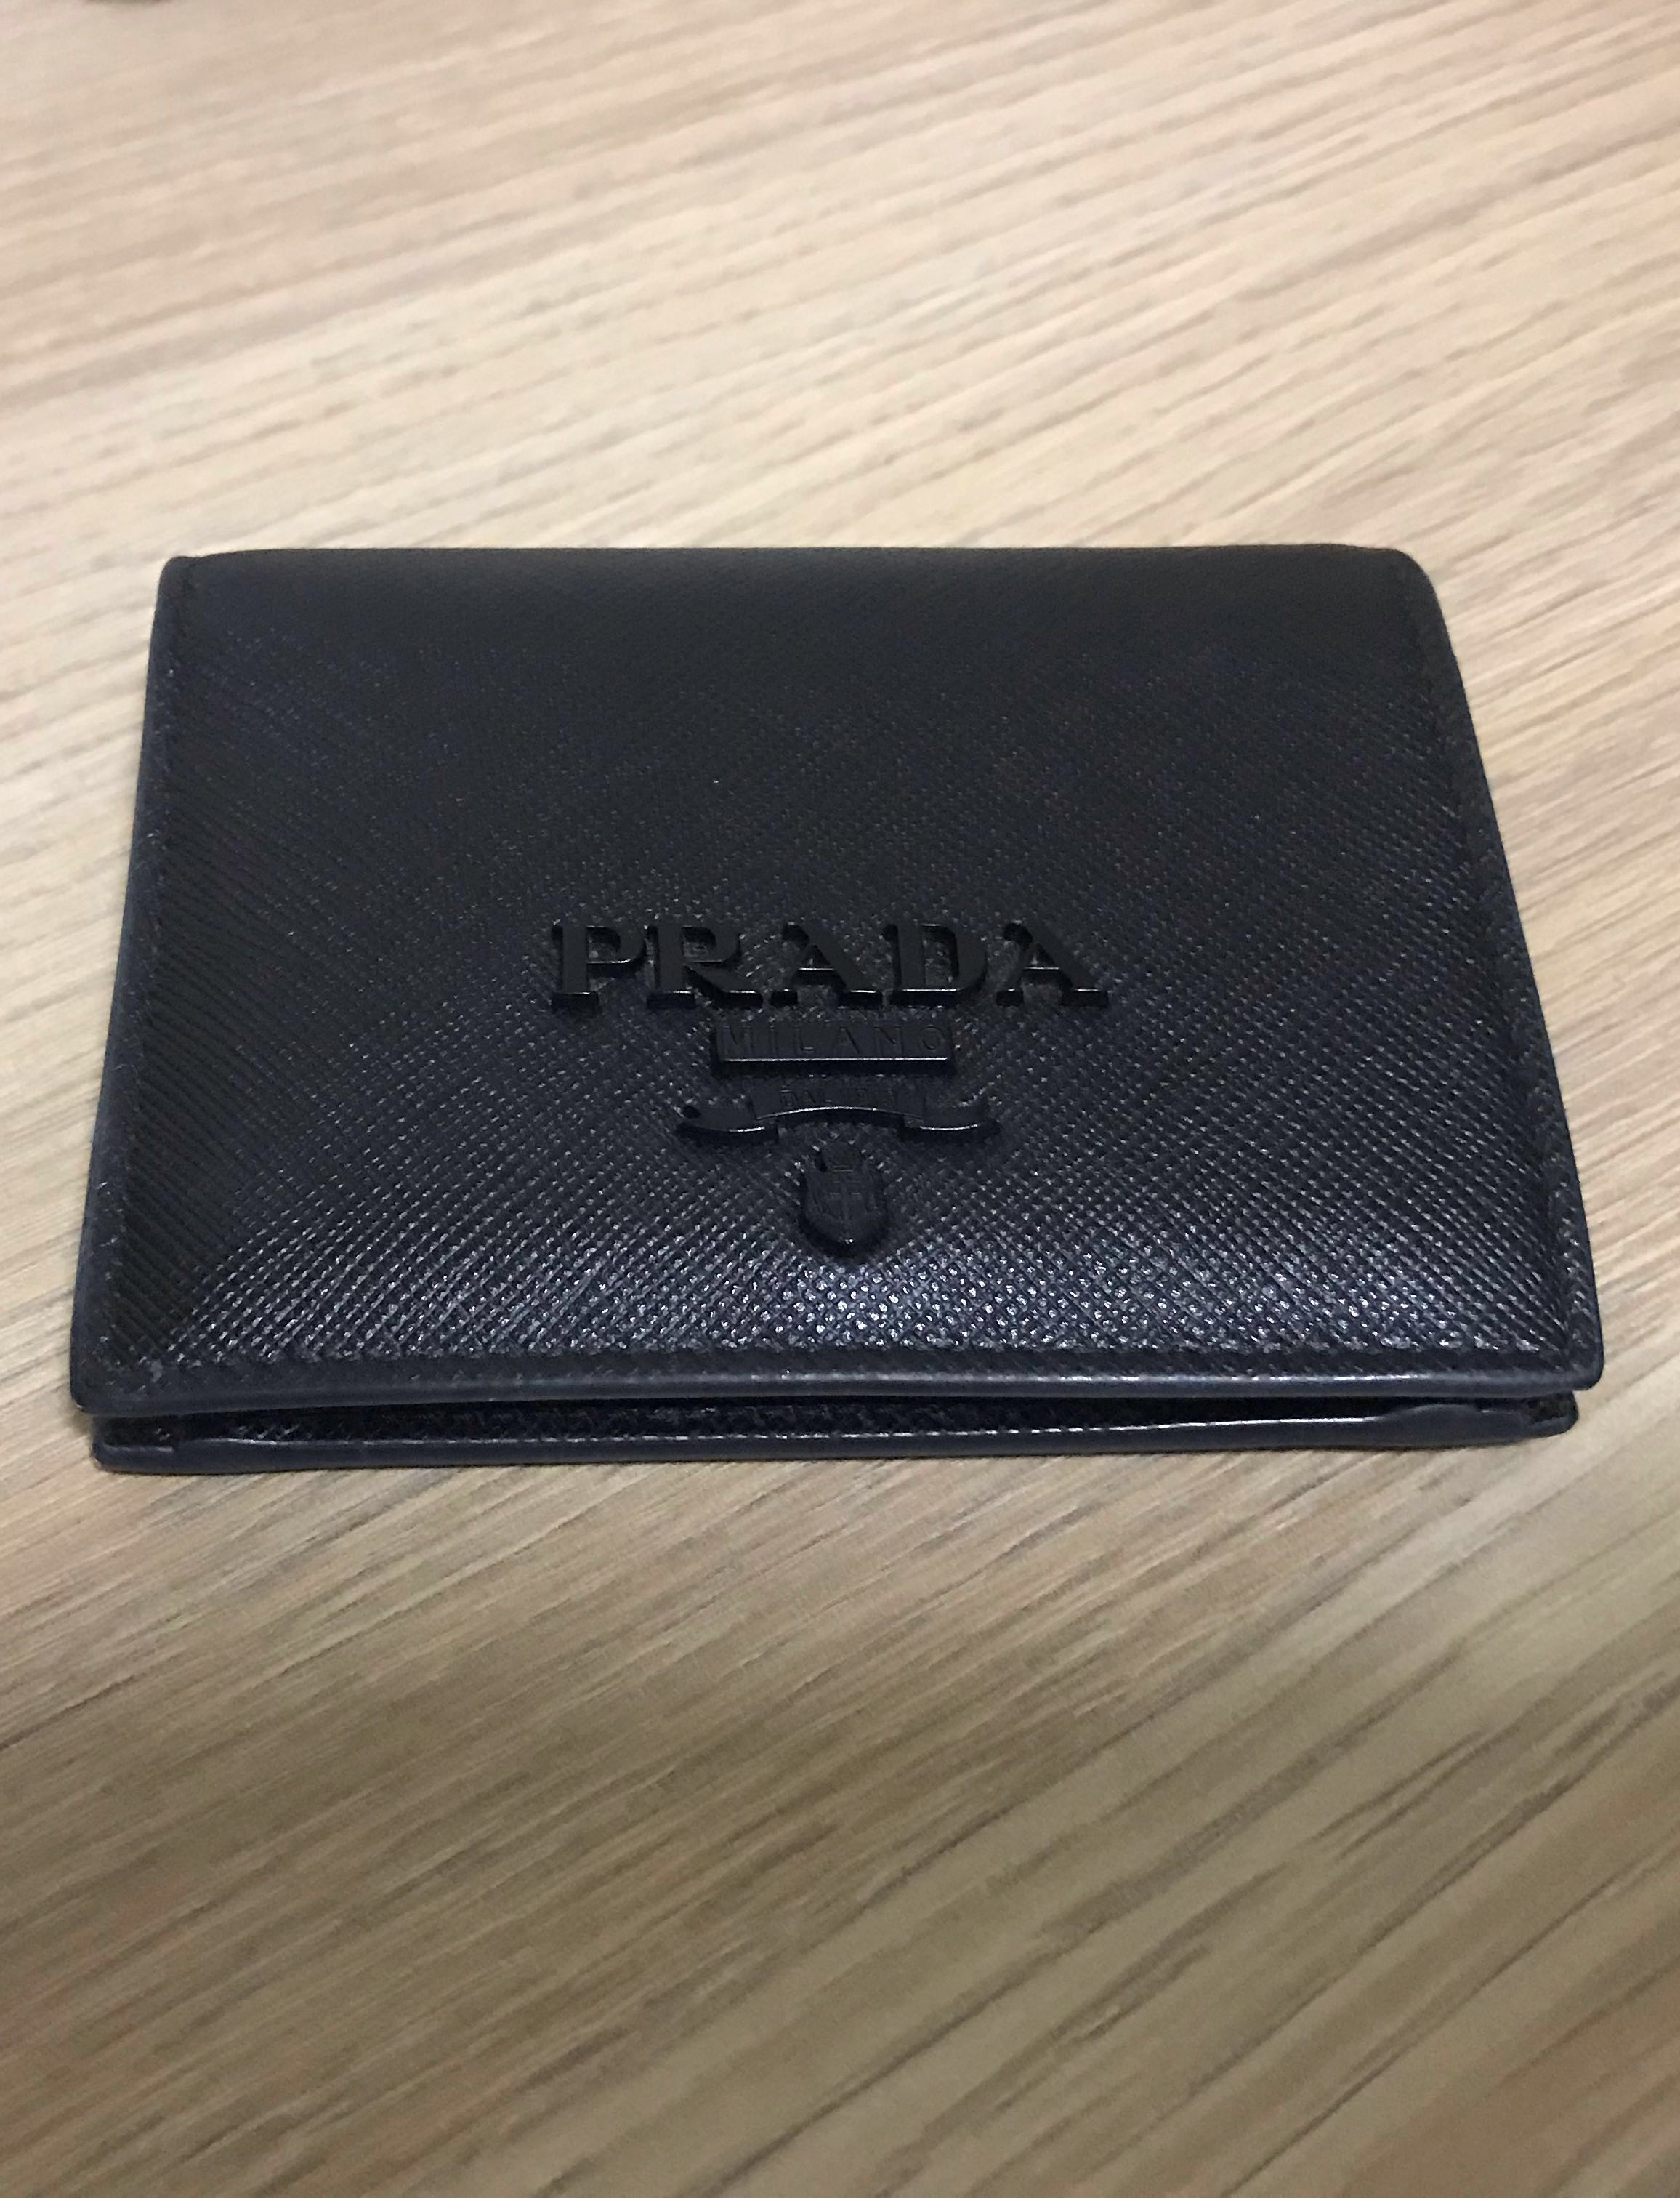 6f5922580a31 Prada Black Saffiano Leather Bii-fold Wallet (Authentic), Women's ...